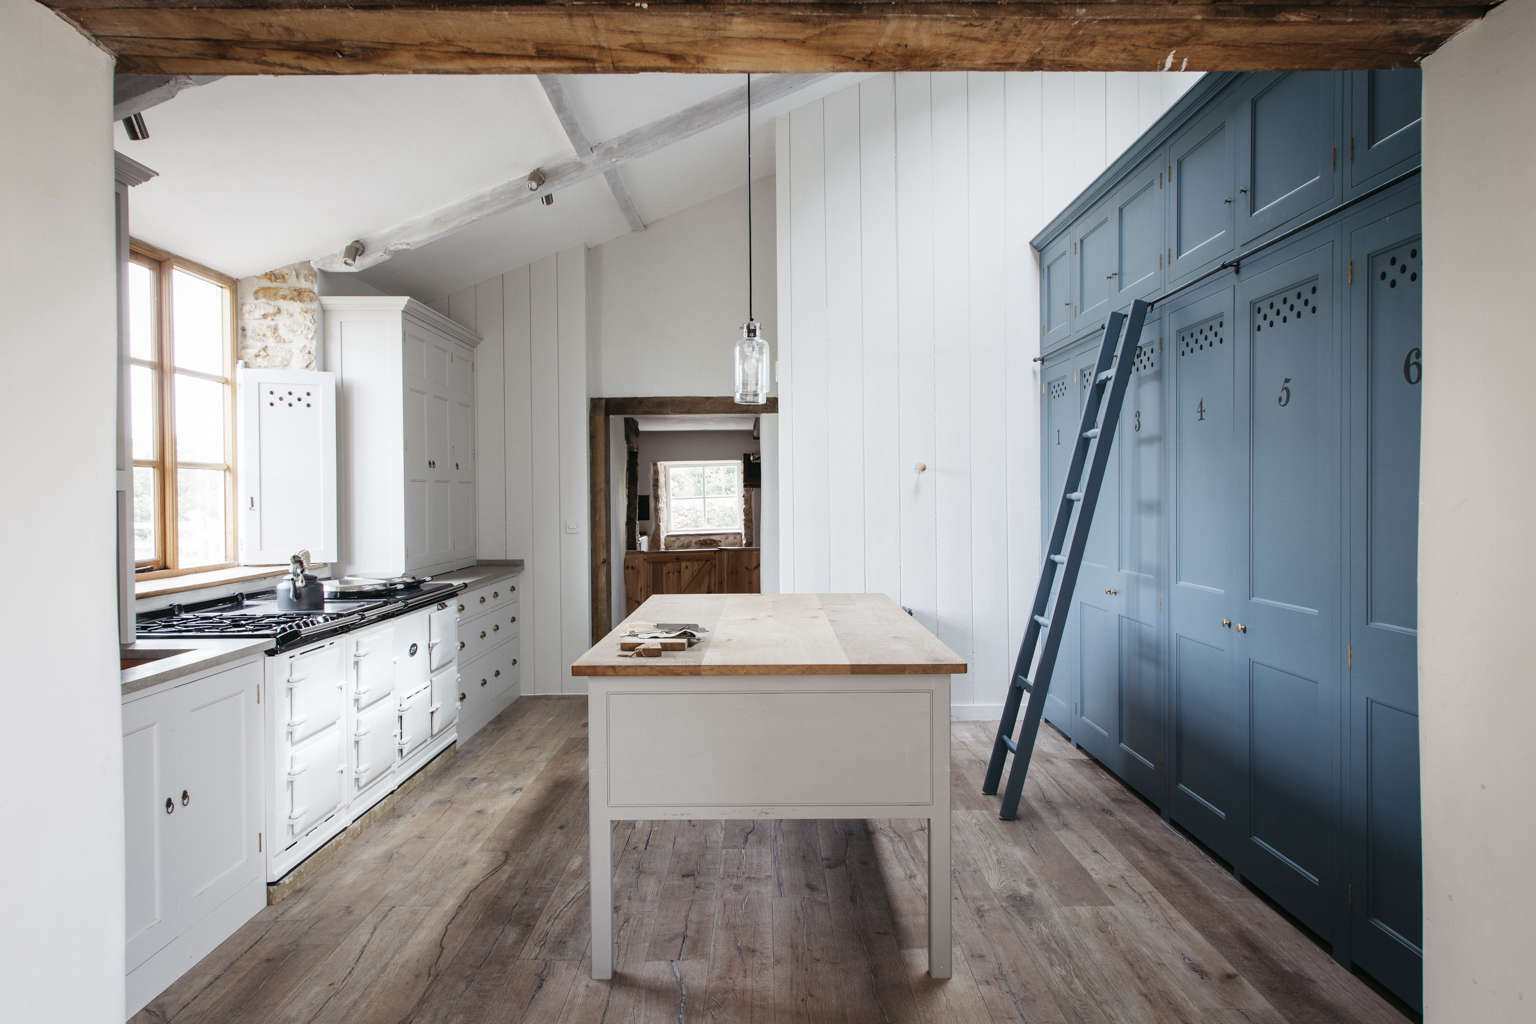 farmhouse kitchen cabinets. Blue kitchen cabinets in a modern spin on classic English by  Plain Kitchen of the Week The Power Numbers